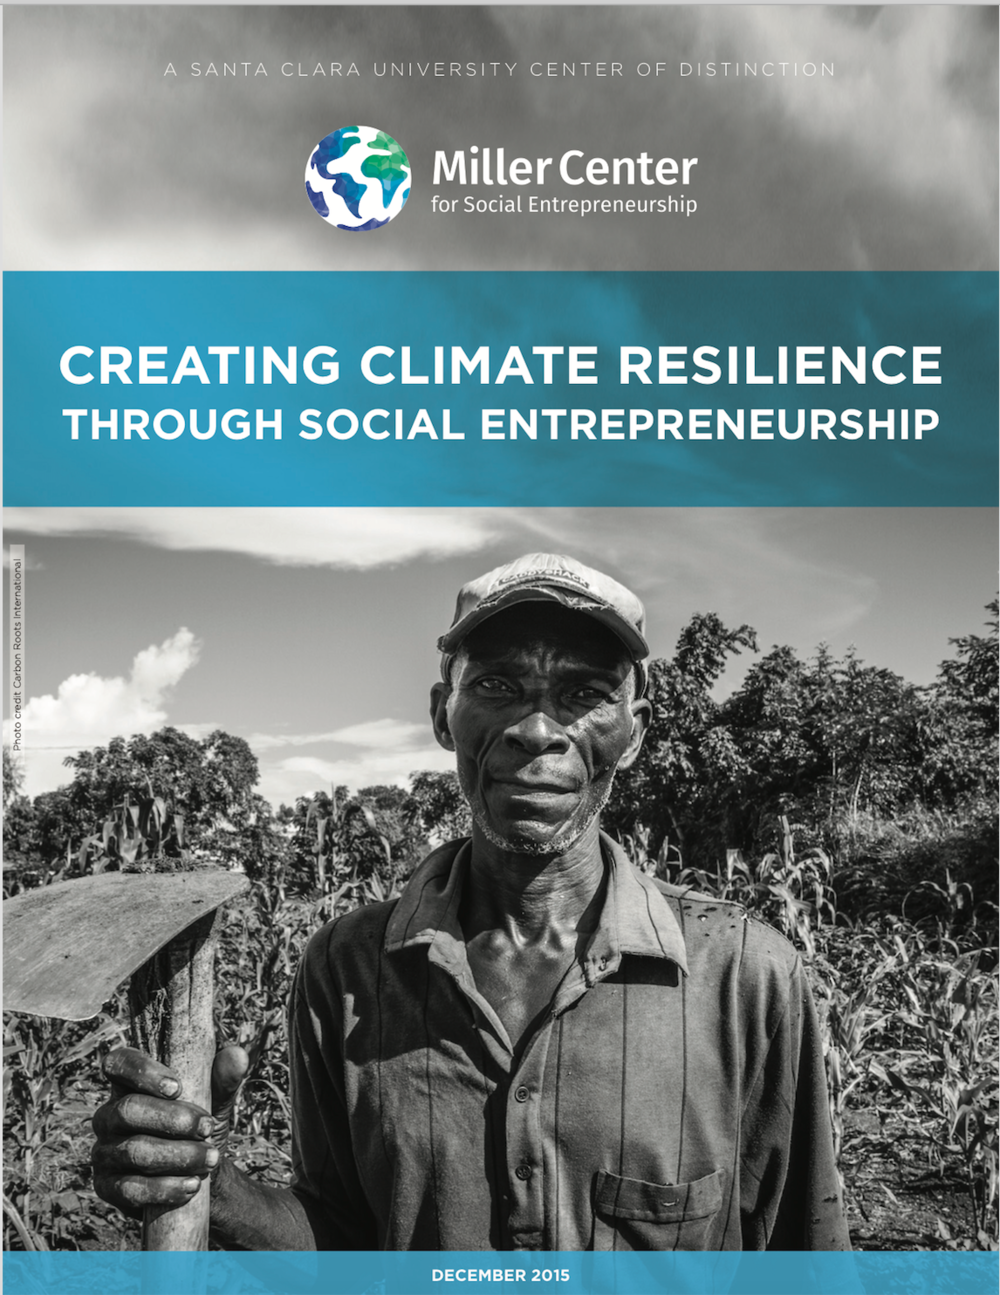 Creating Climate Resilience through Social Entrepreneurship